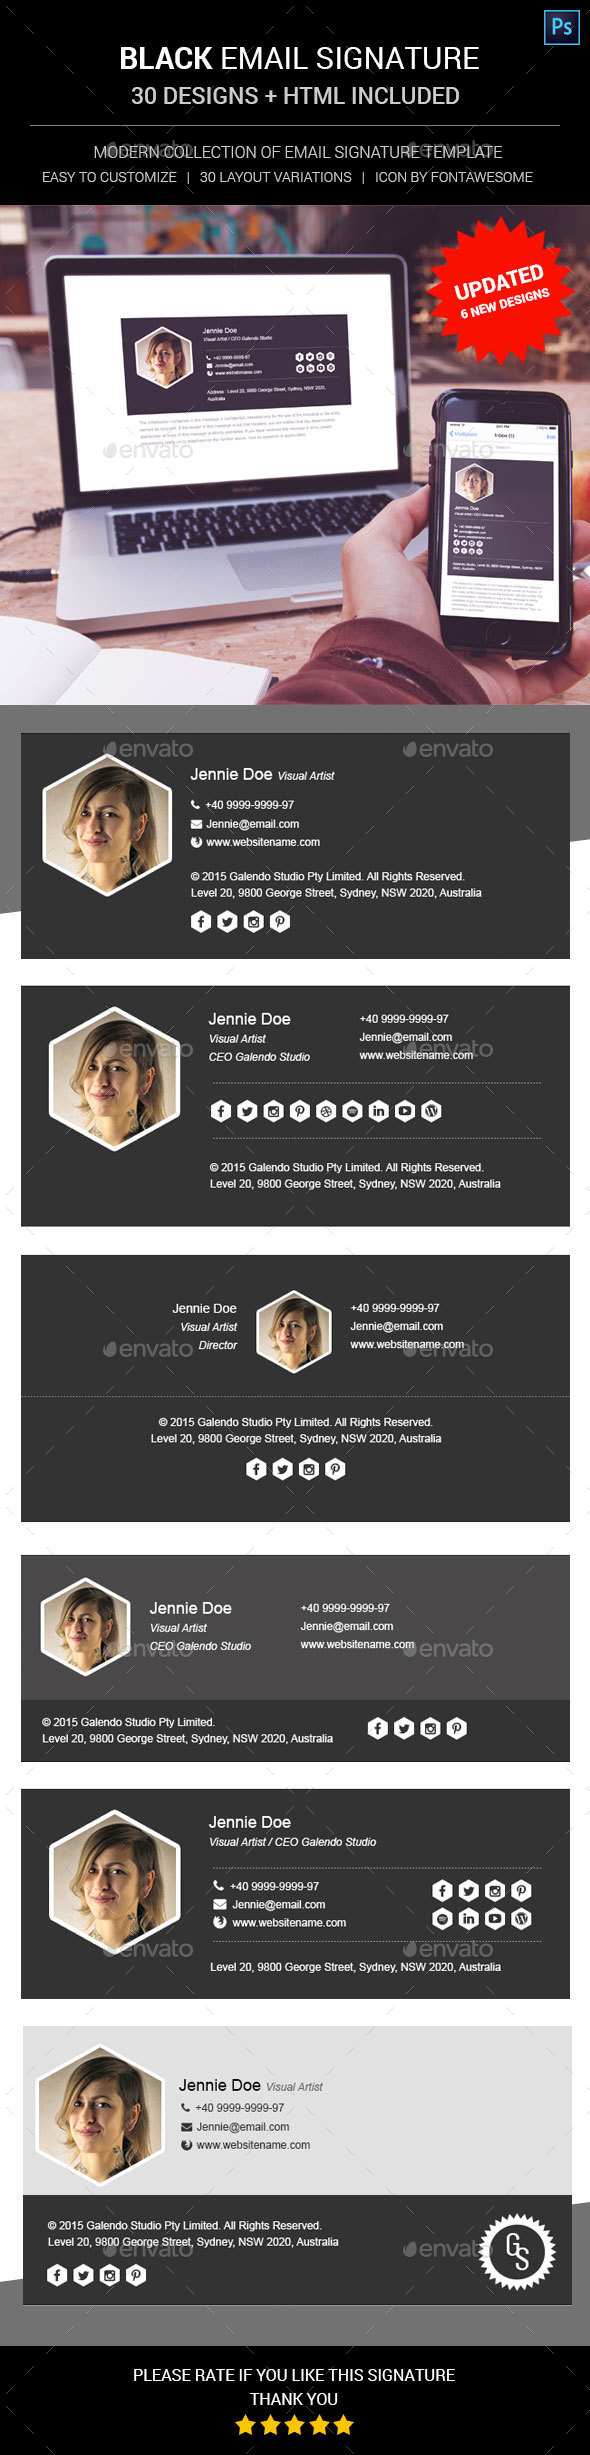 Email Signature Graphics, Designs & Templates from GraphicRiver